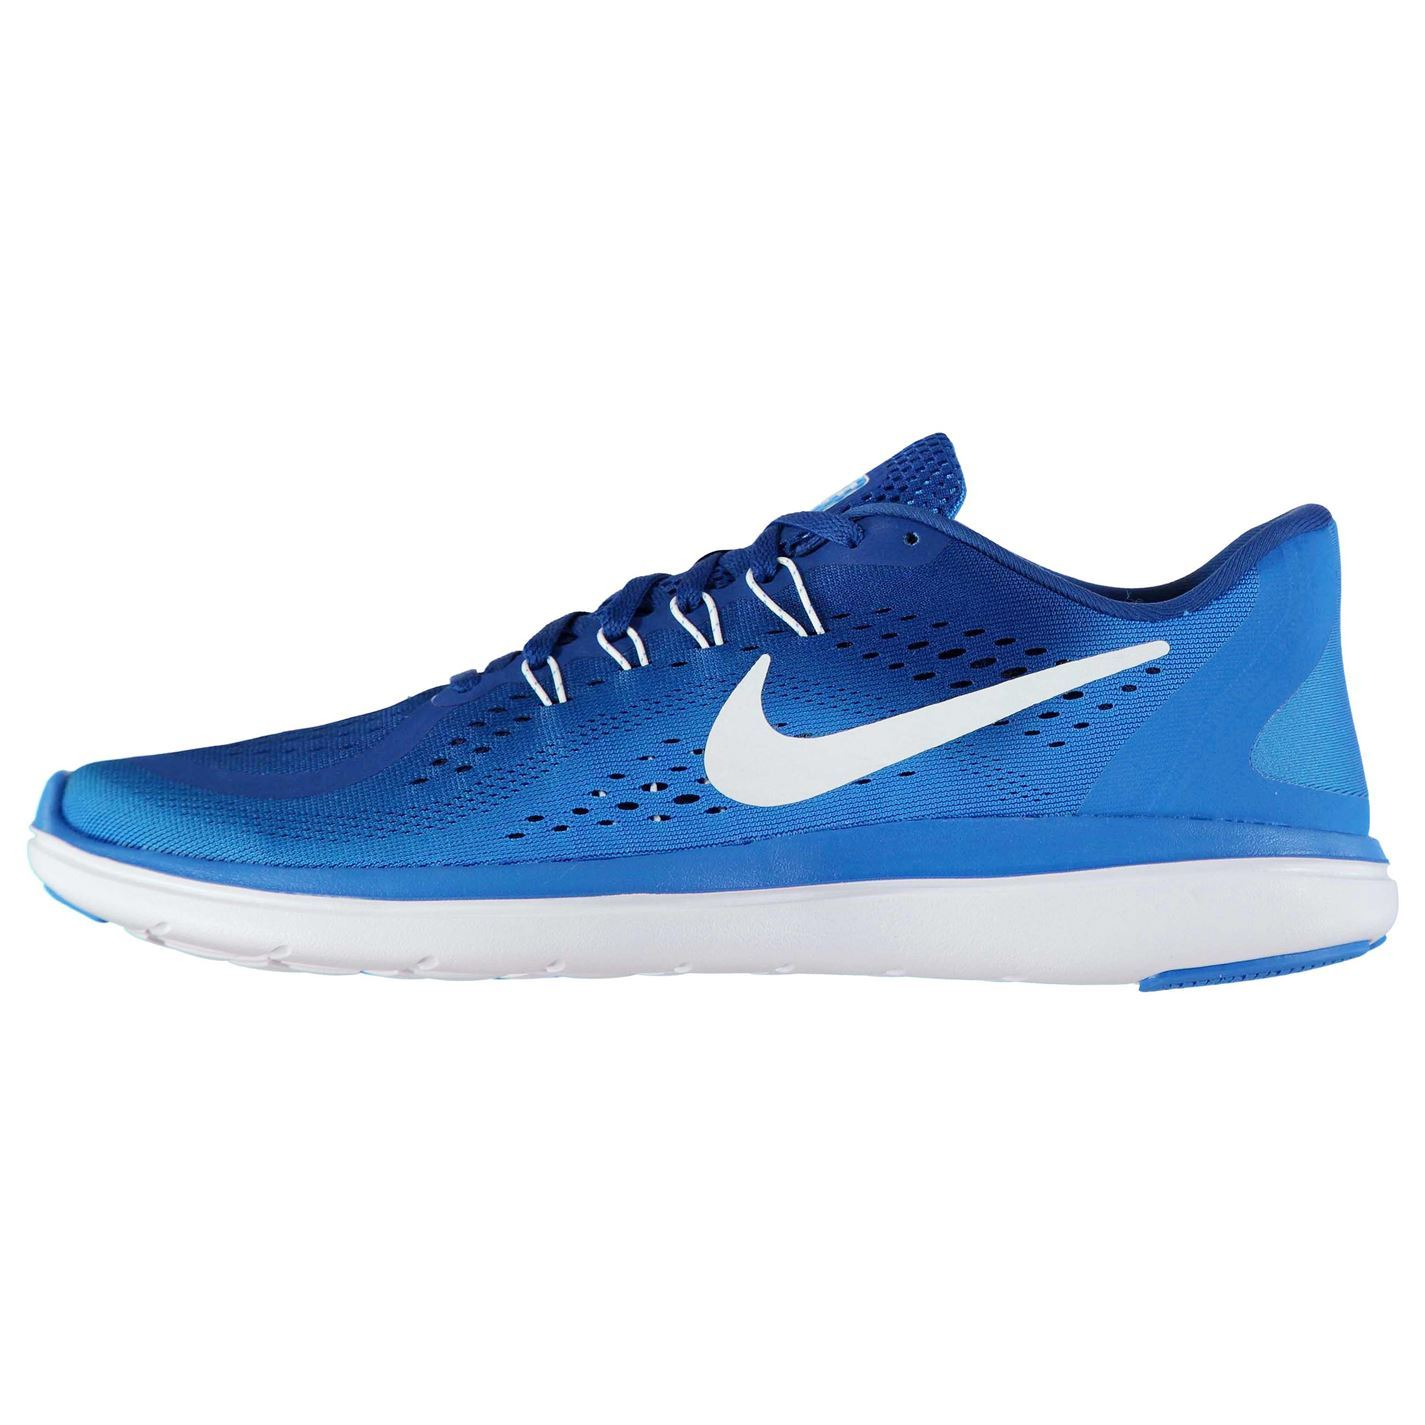 df02207f7f9a5 ... Nike Flex 2017 Run Running Shoes Mens Blue/White Jogging Trainers  Sneakers ...